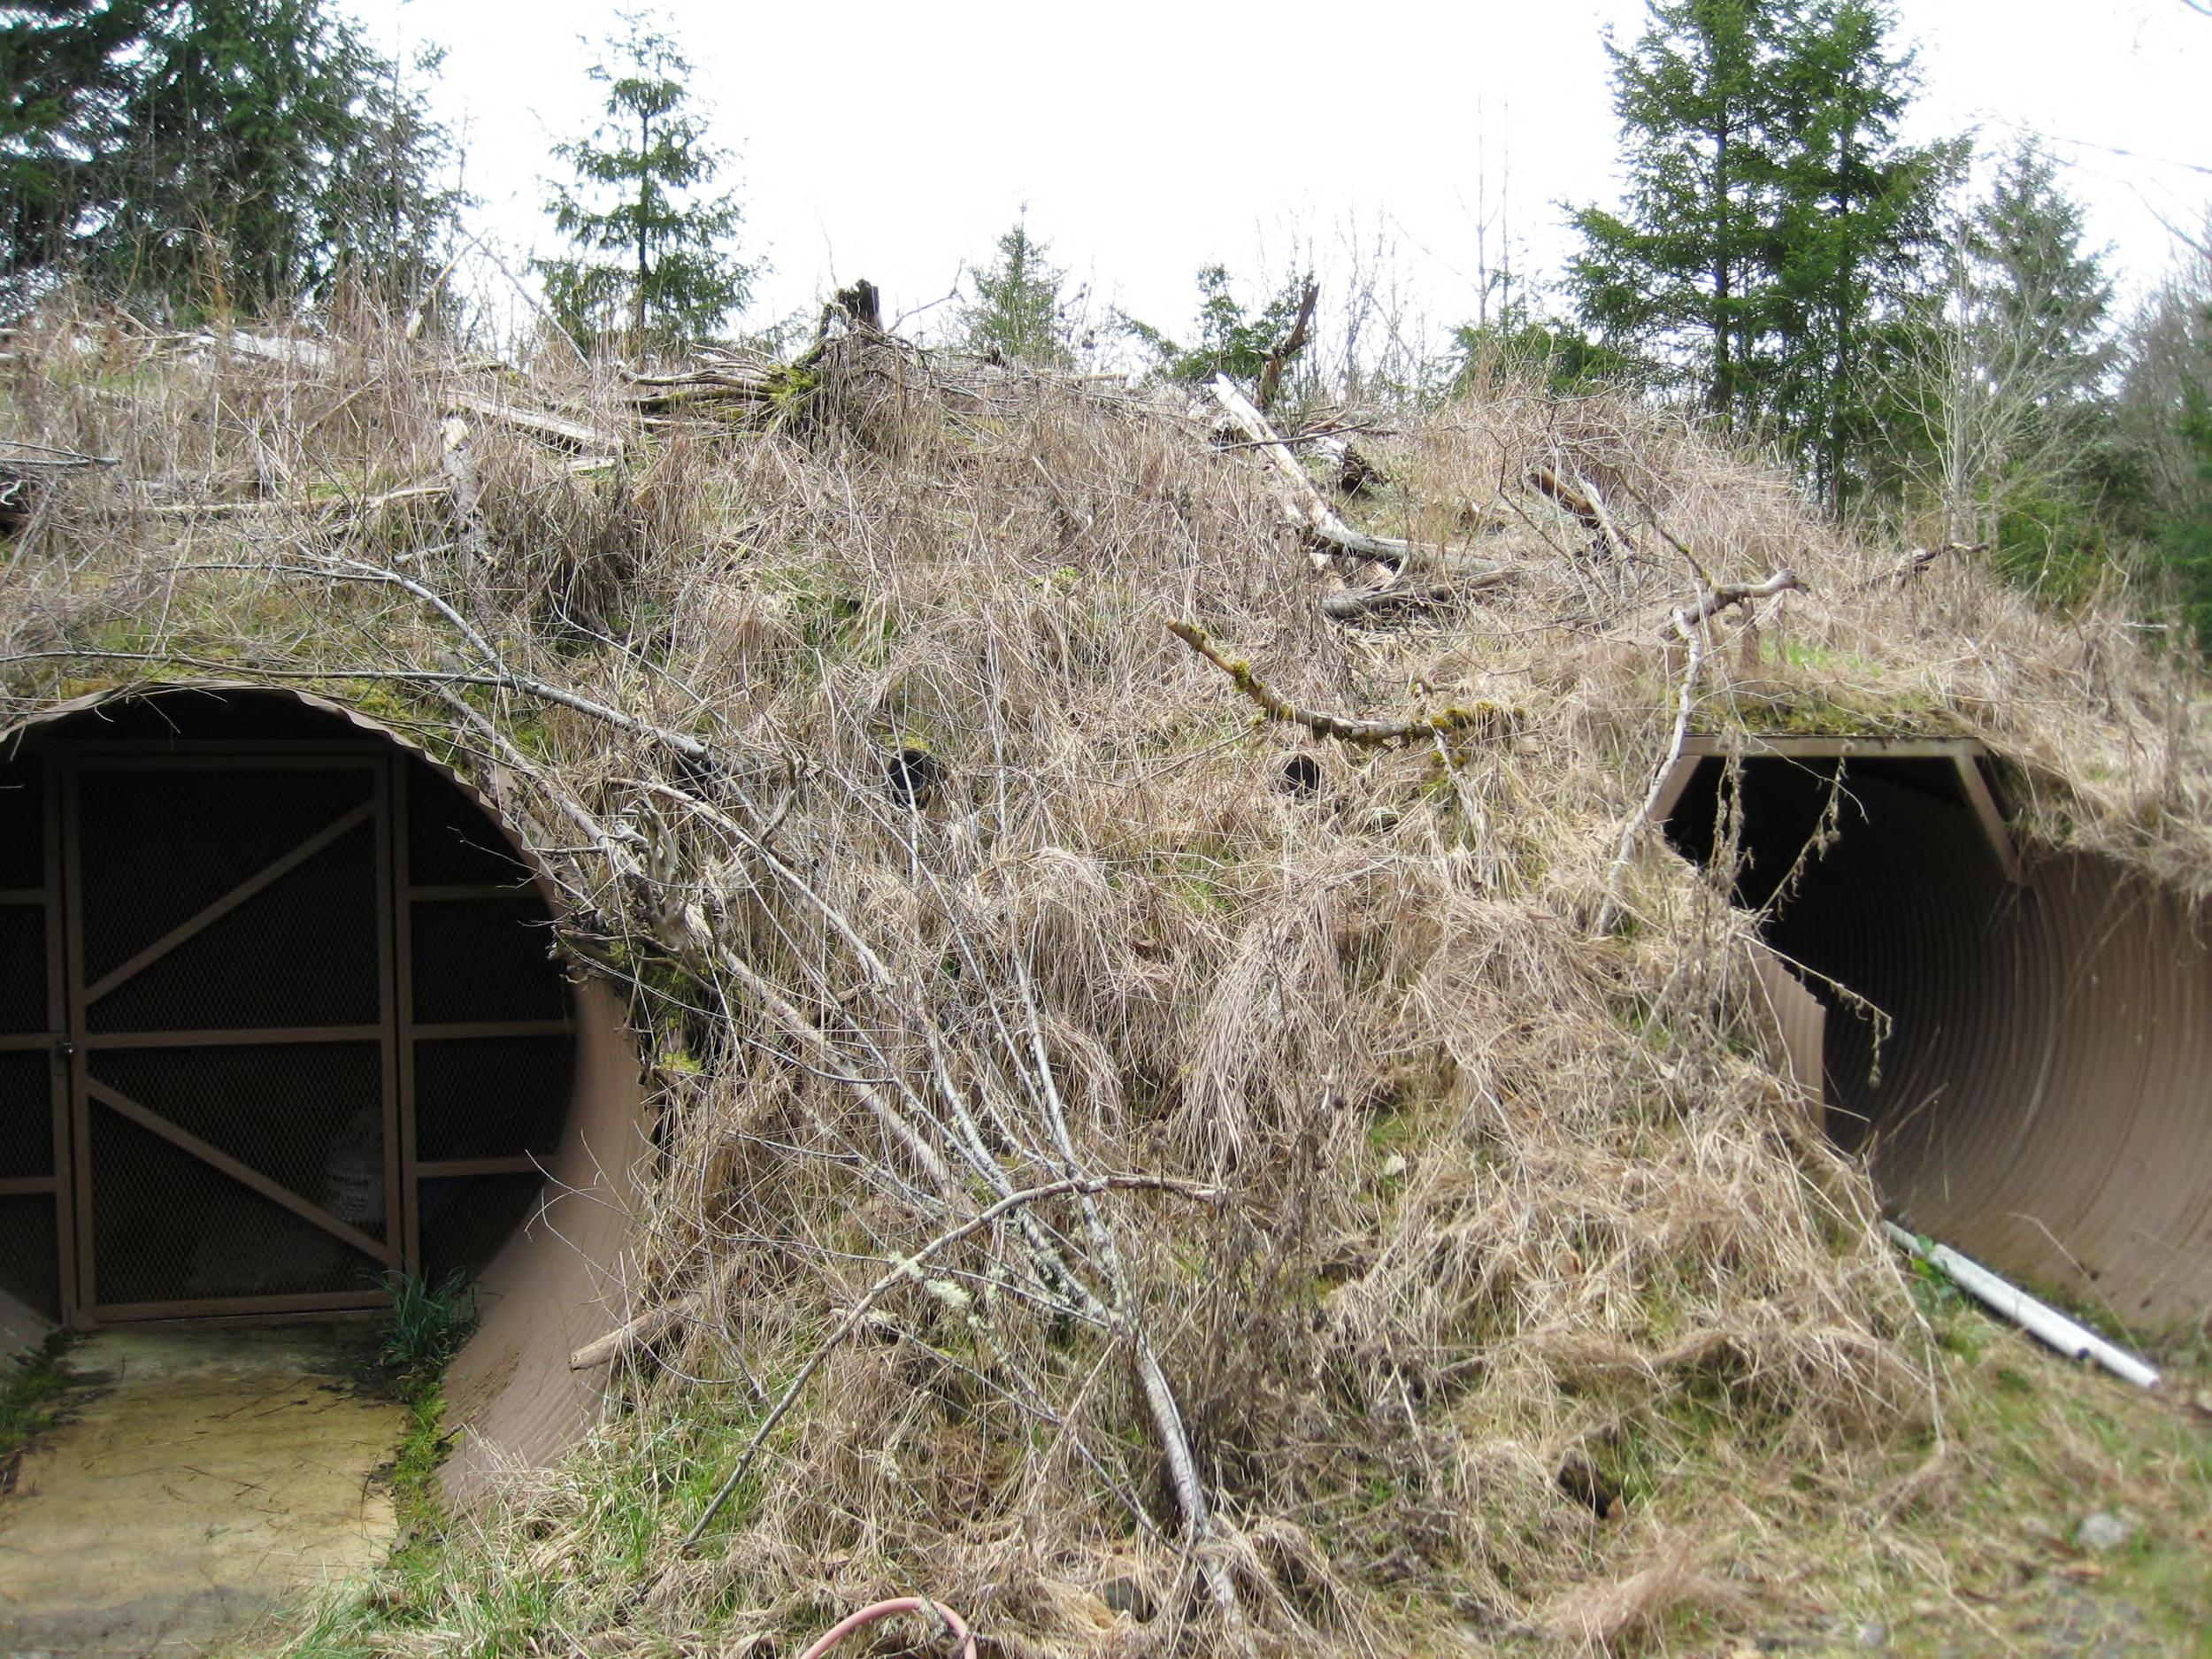 Image: This 'doomsday bunker' was discovered when FBI agents served a search warrant on a property owned by Radu and Diana Nemes in Yelm, Wash.